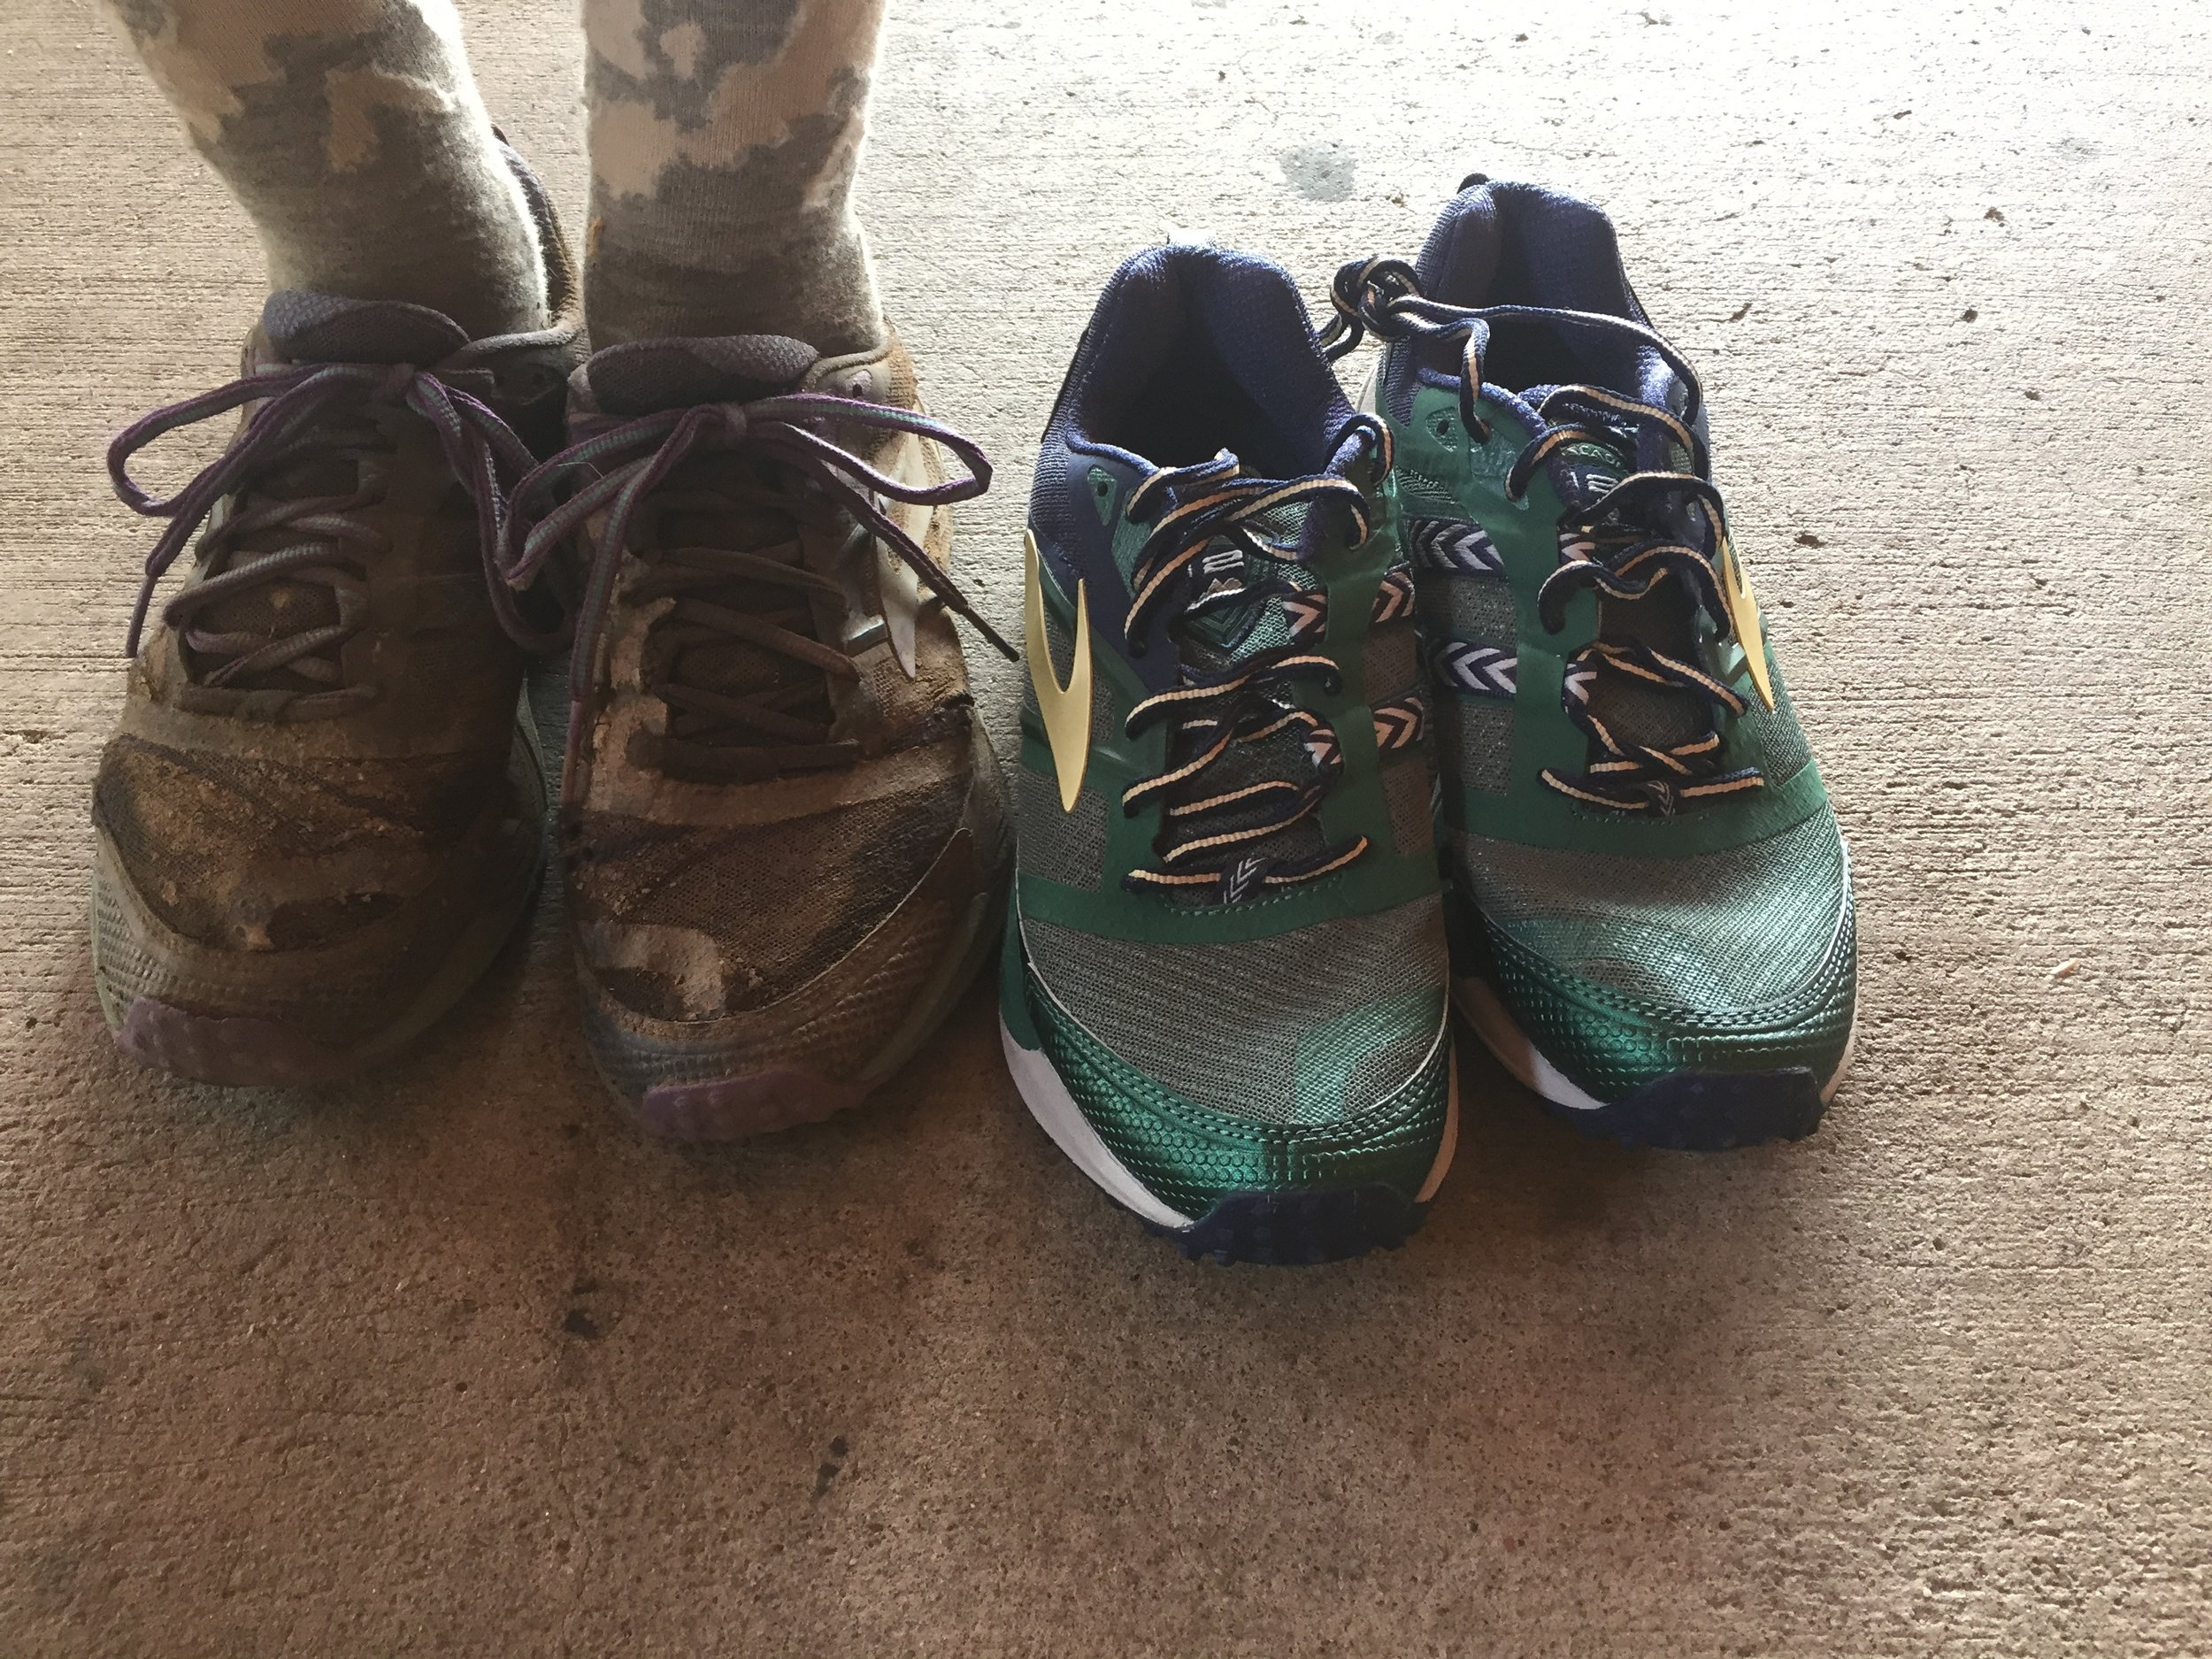 Can you guess which ones are the old pair?